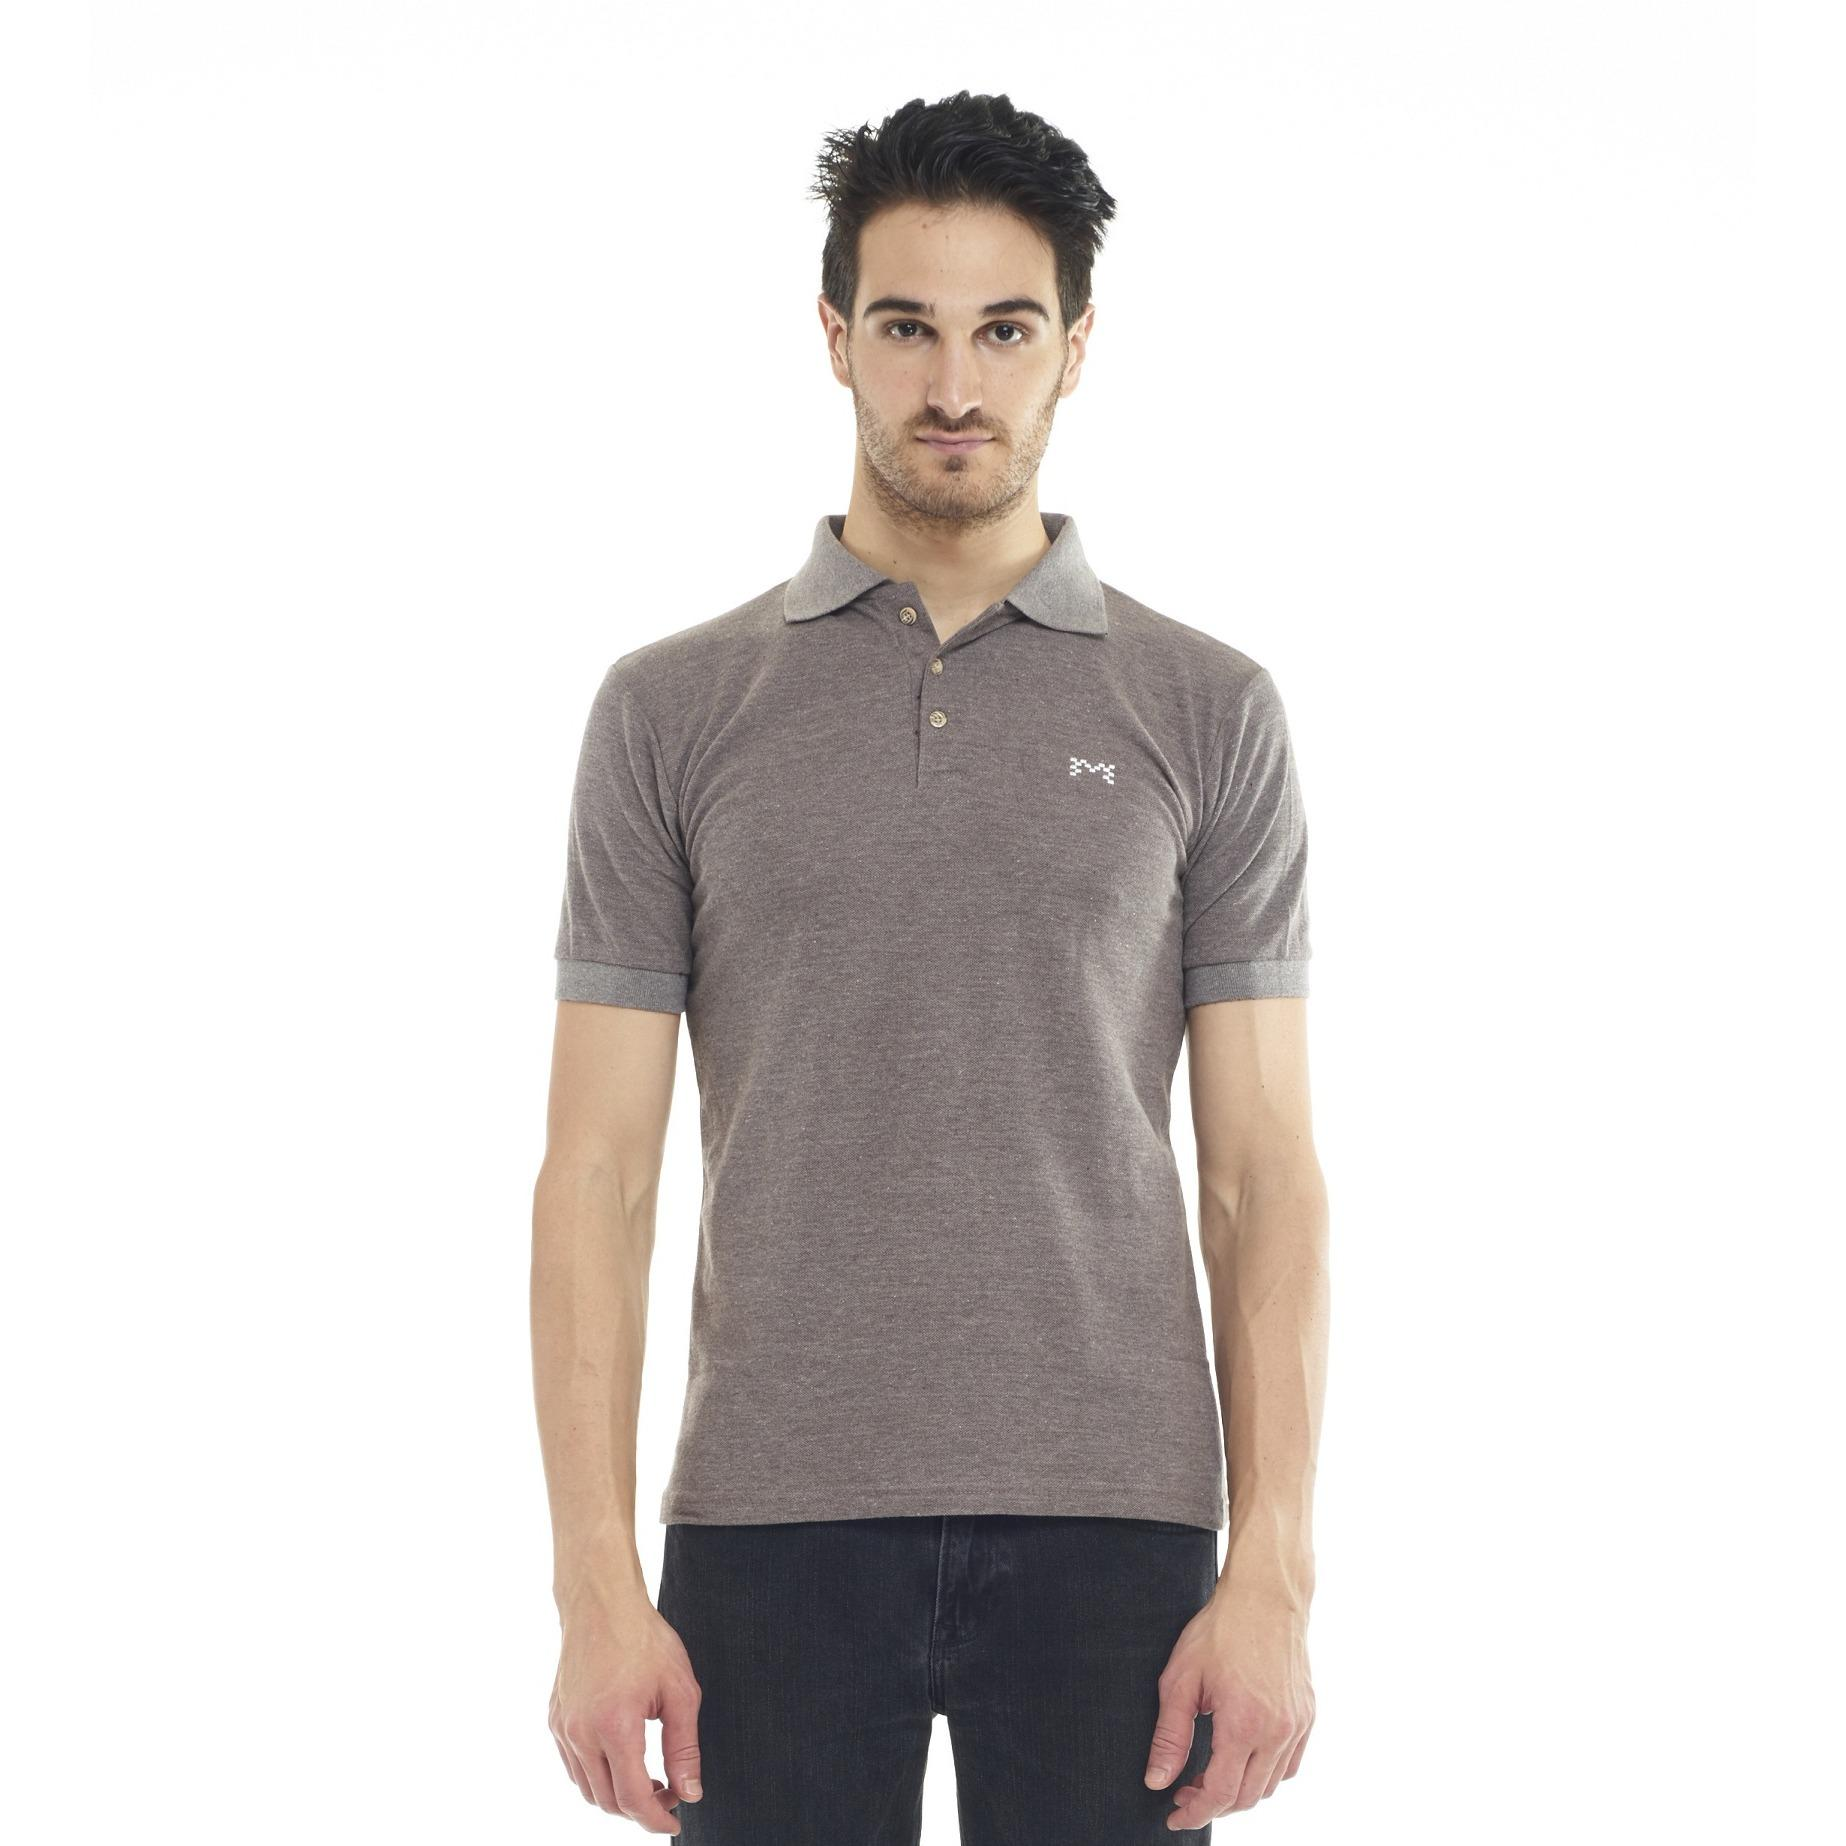 Harga Mark Inc Polo Shirt Two Tone Grey Mark Inc Ori